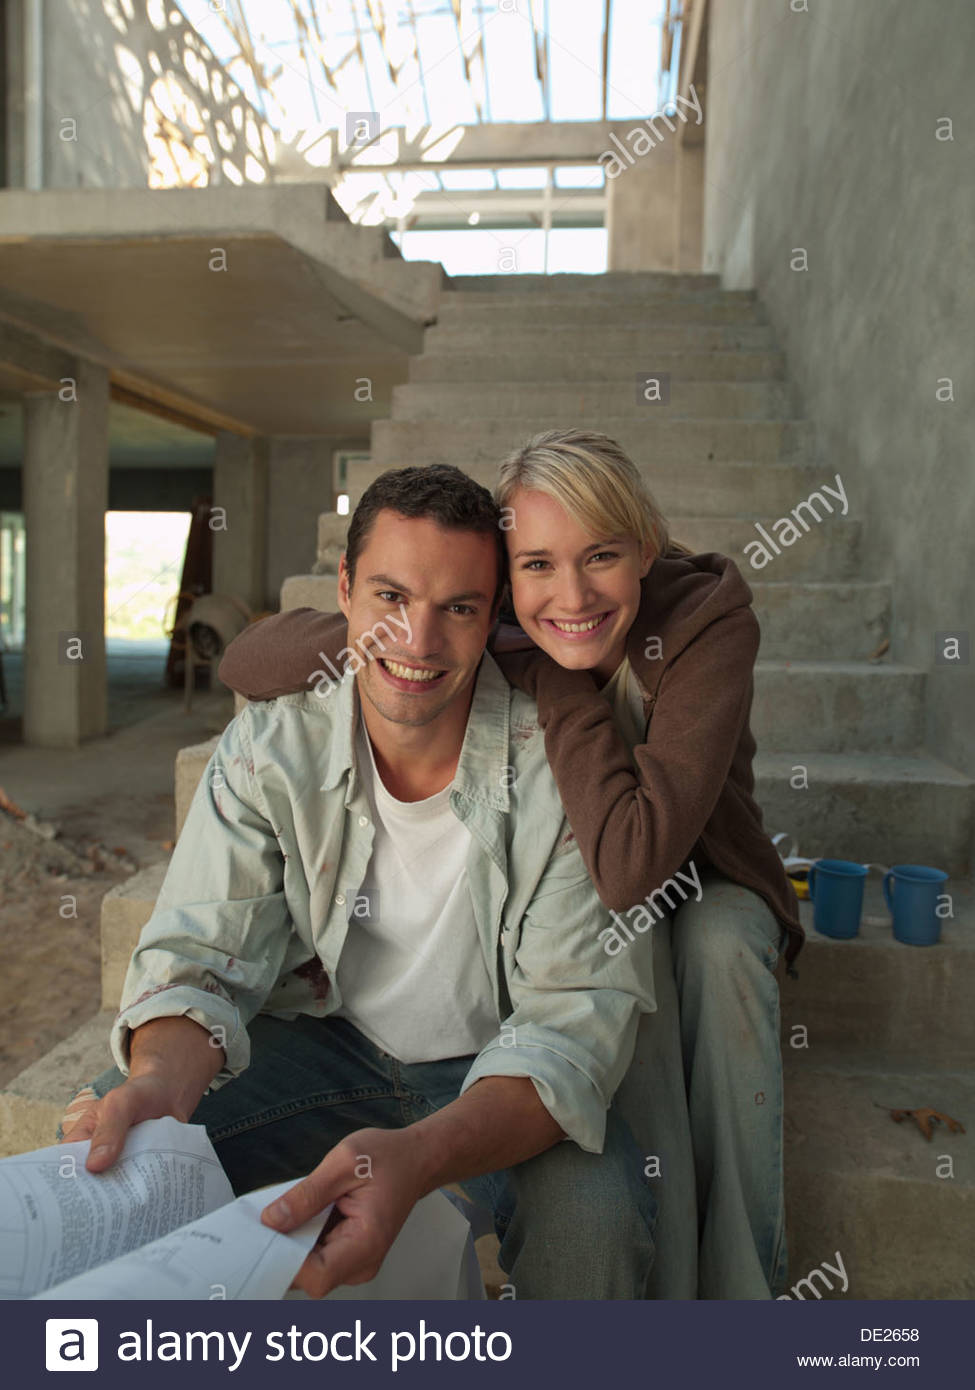 Couple looking at blueprints on staircase of house under construction - Stock Image